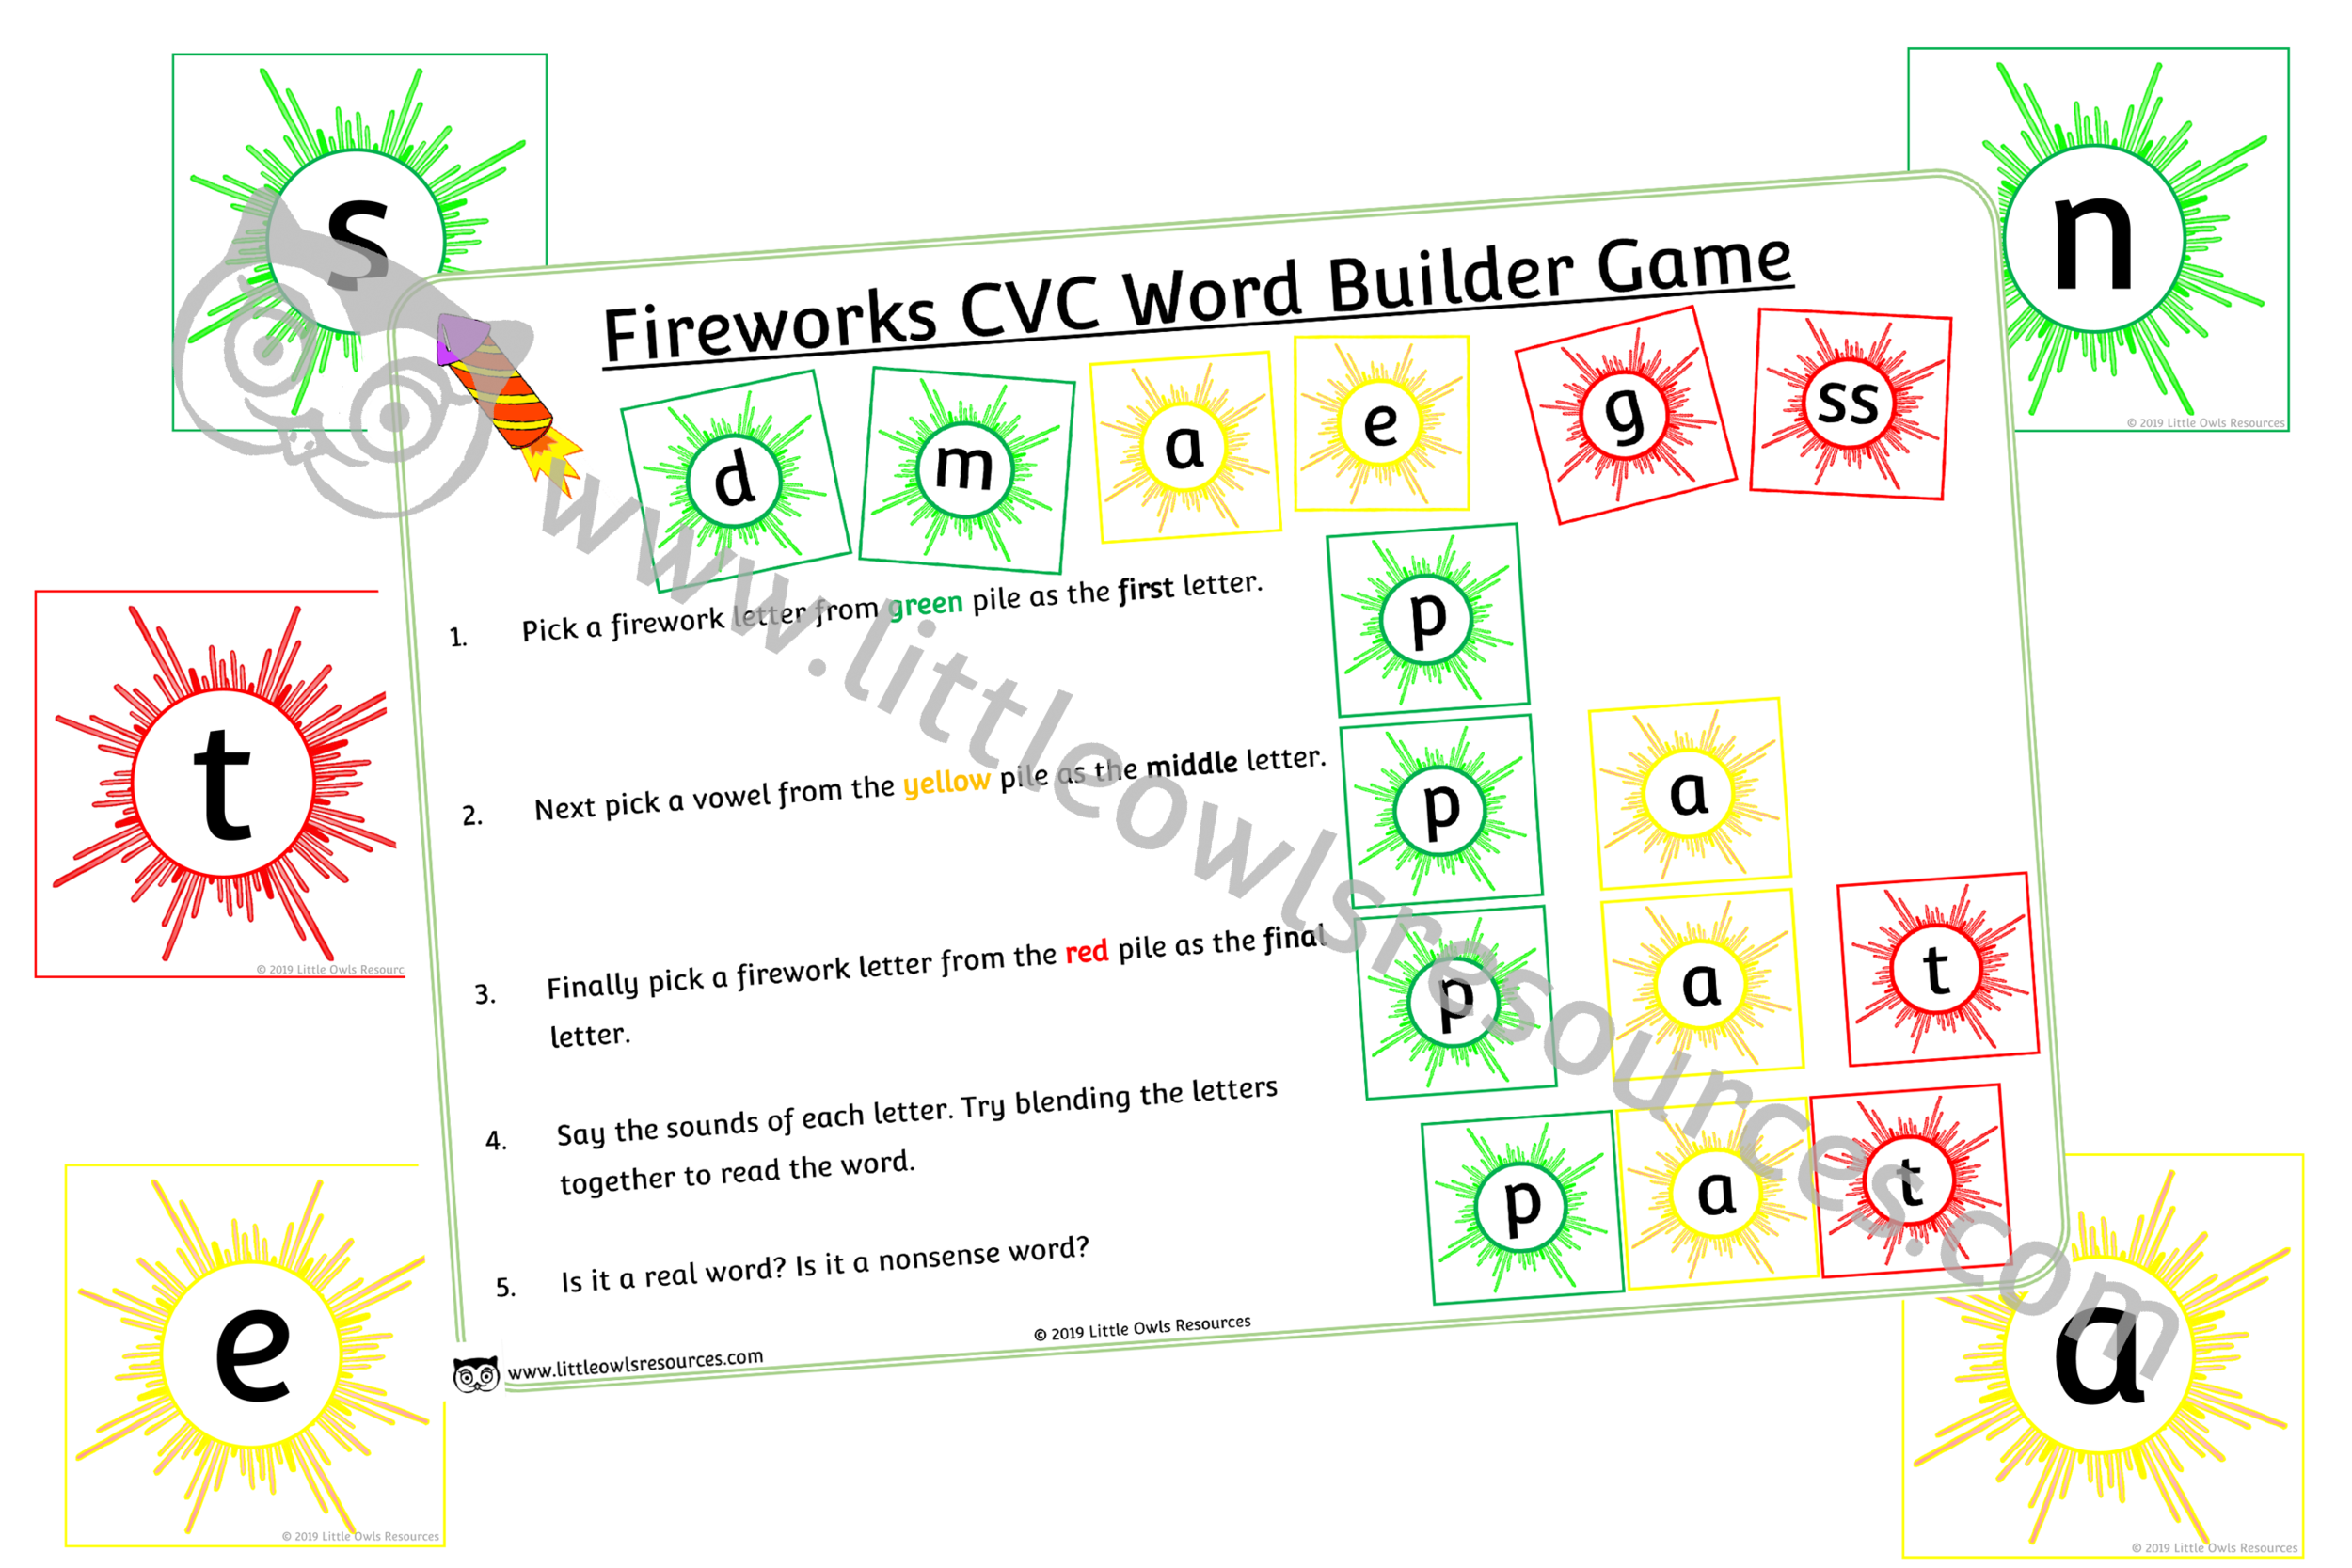 Fireworks CVC word builder game